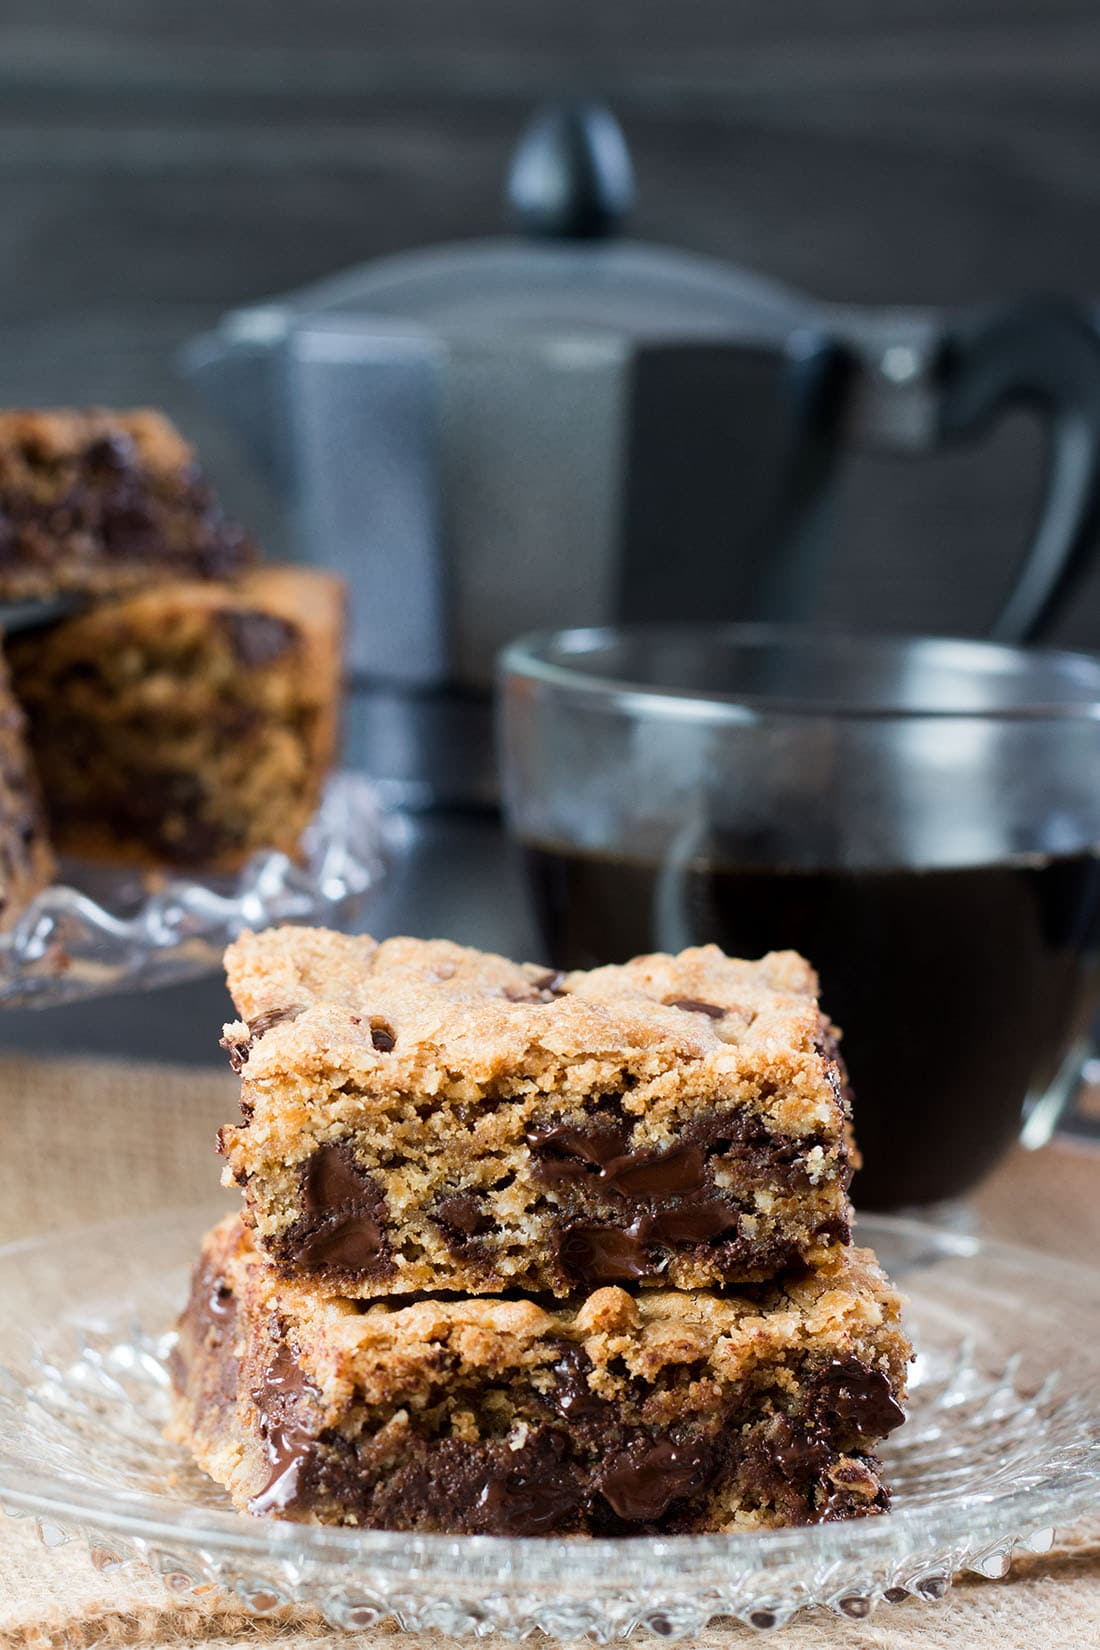 fresh out of the oven Chocolate Chip Spiced Oat Bars showing melted chocolate chips with a pot of coffee in the background